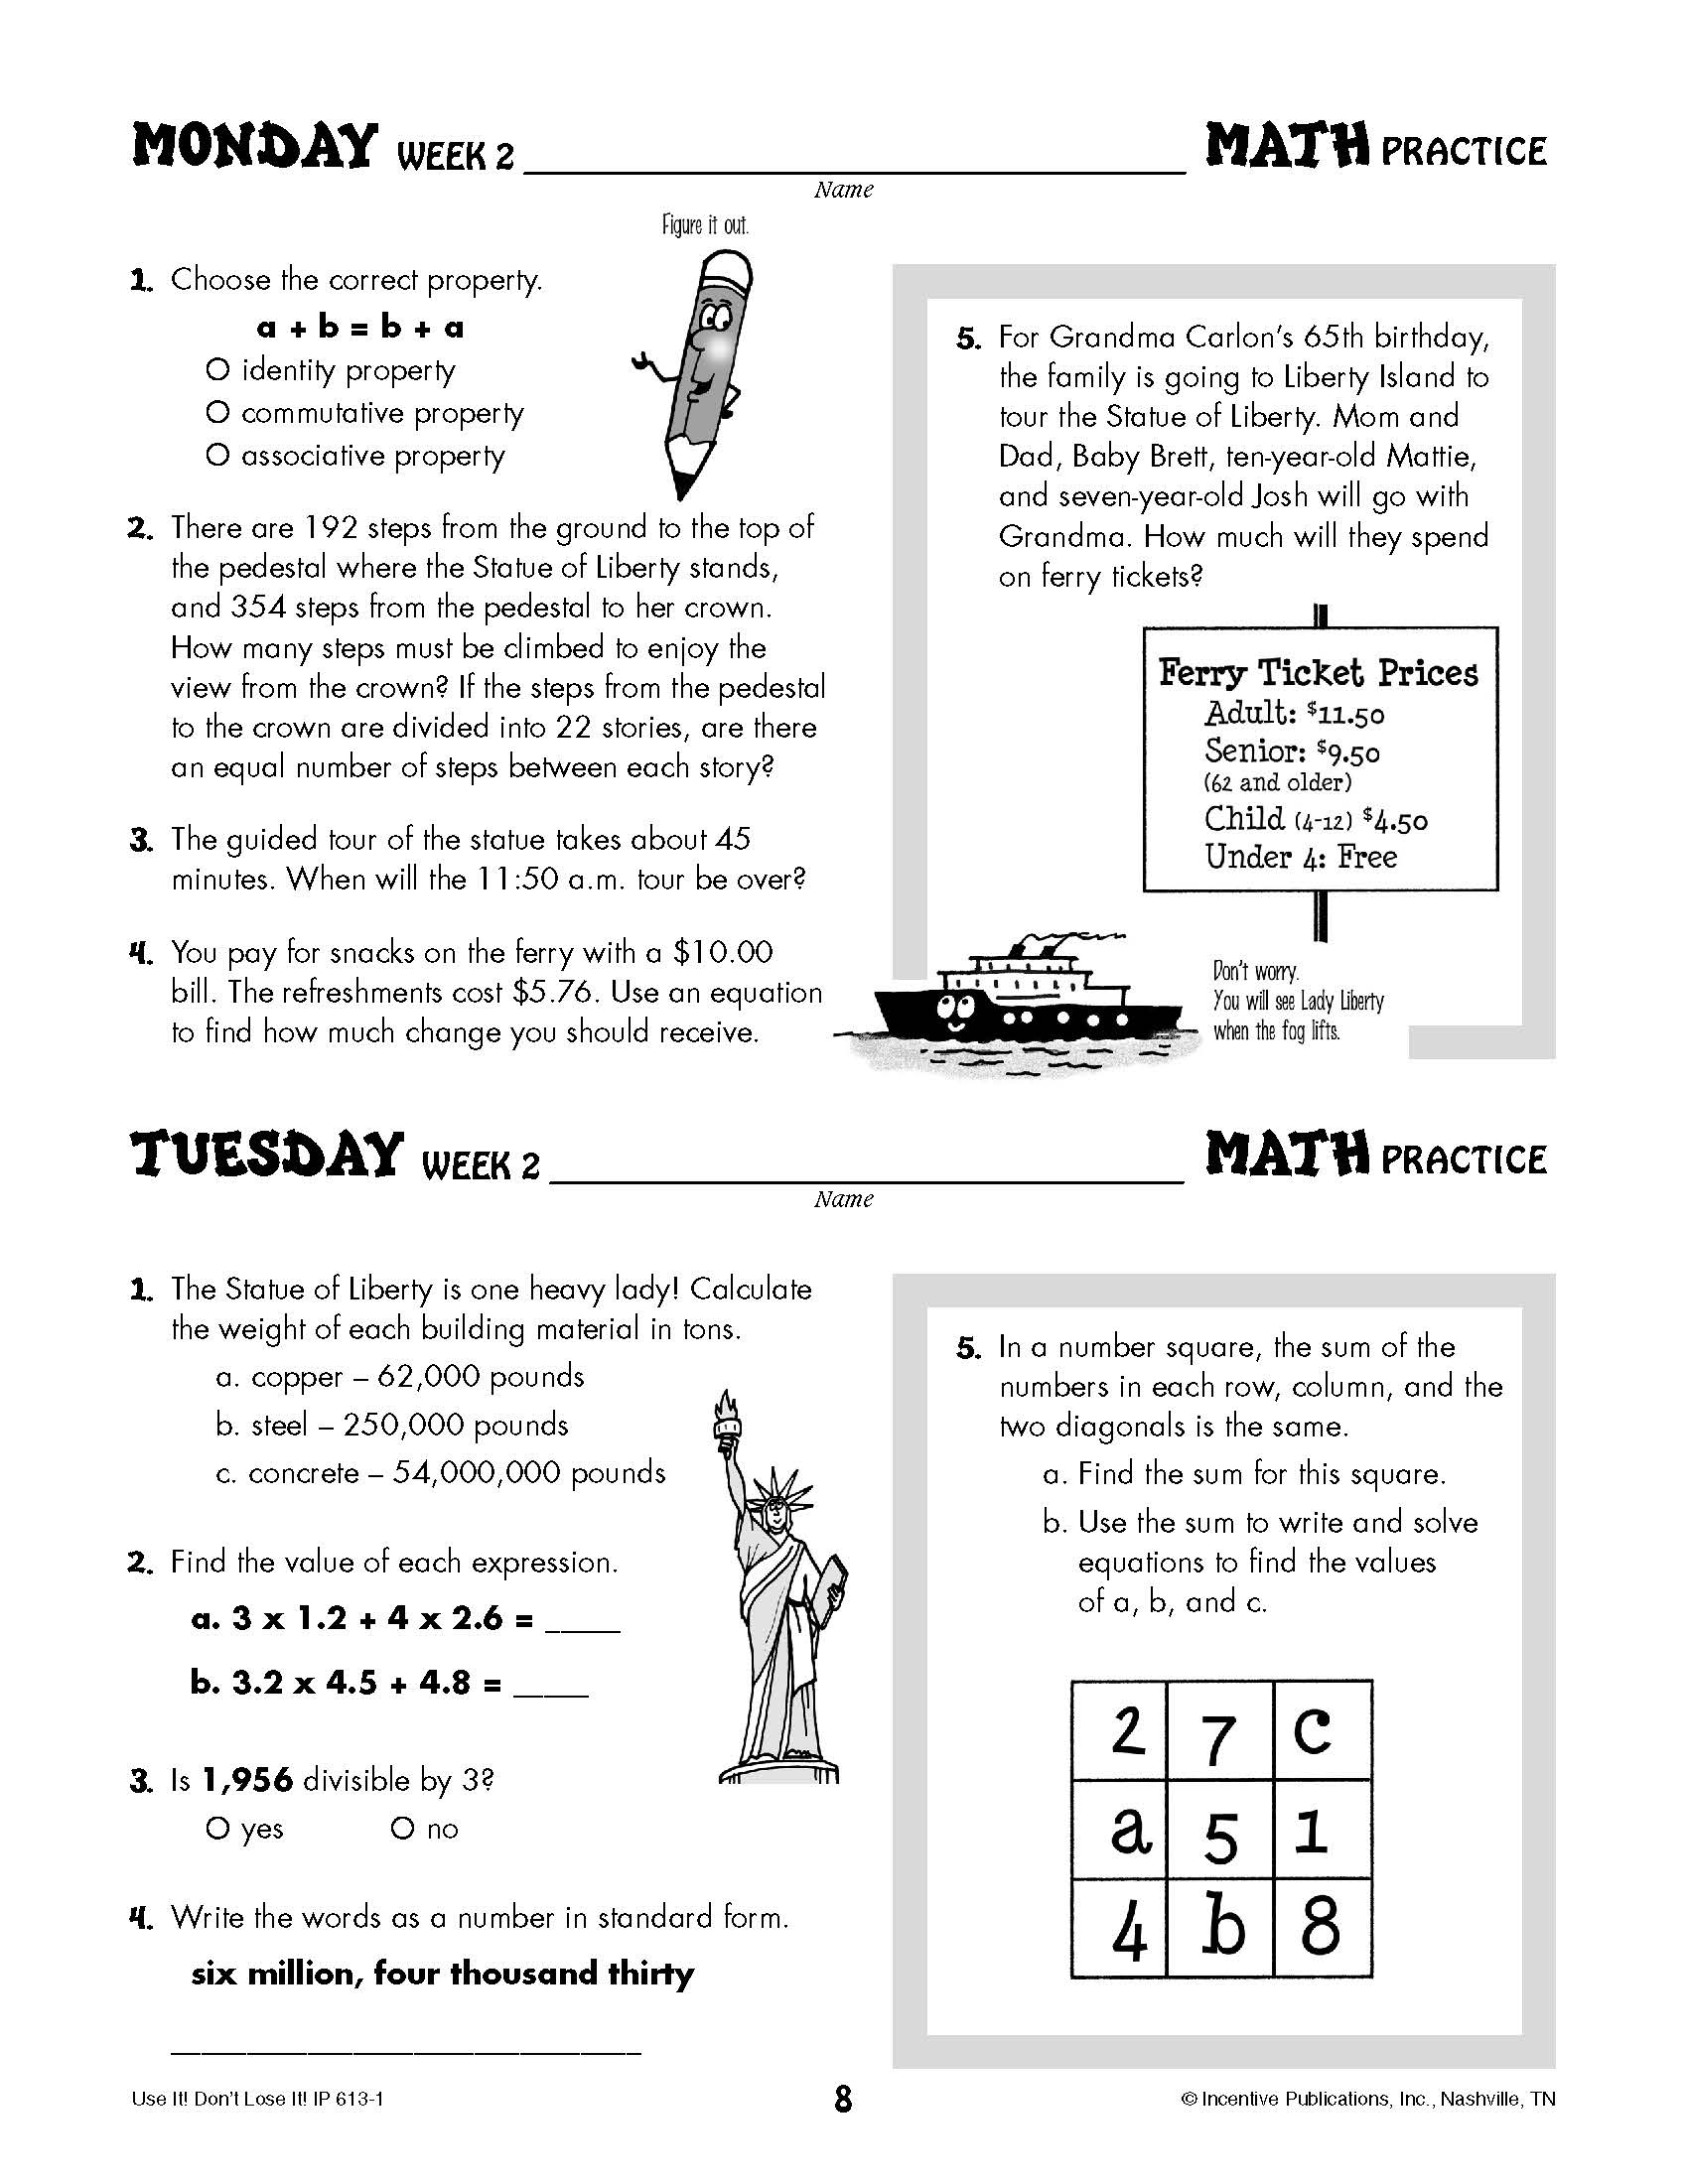 Daily Math Practice 6th Grade: Use It! Don't Lose It!